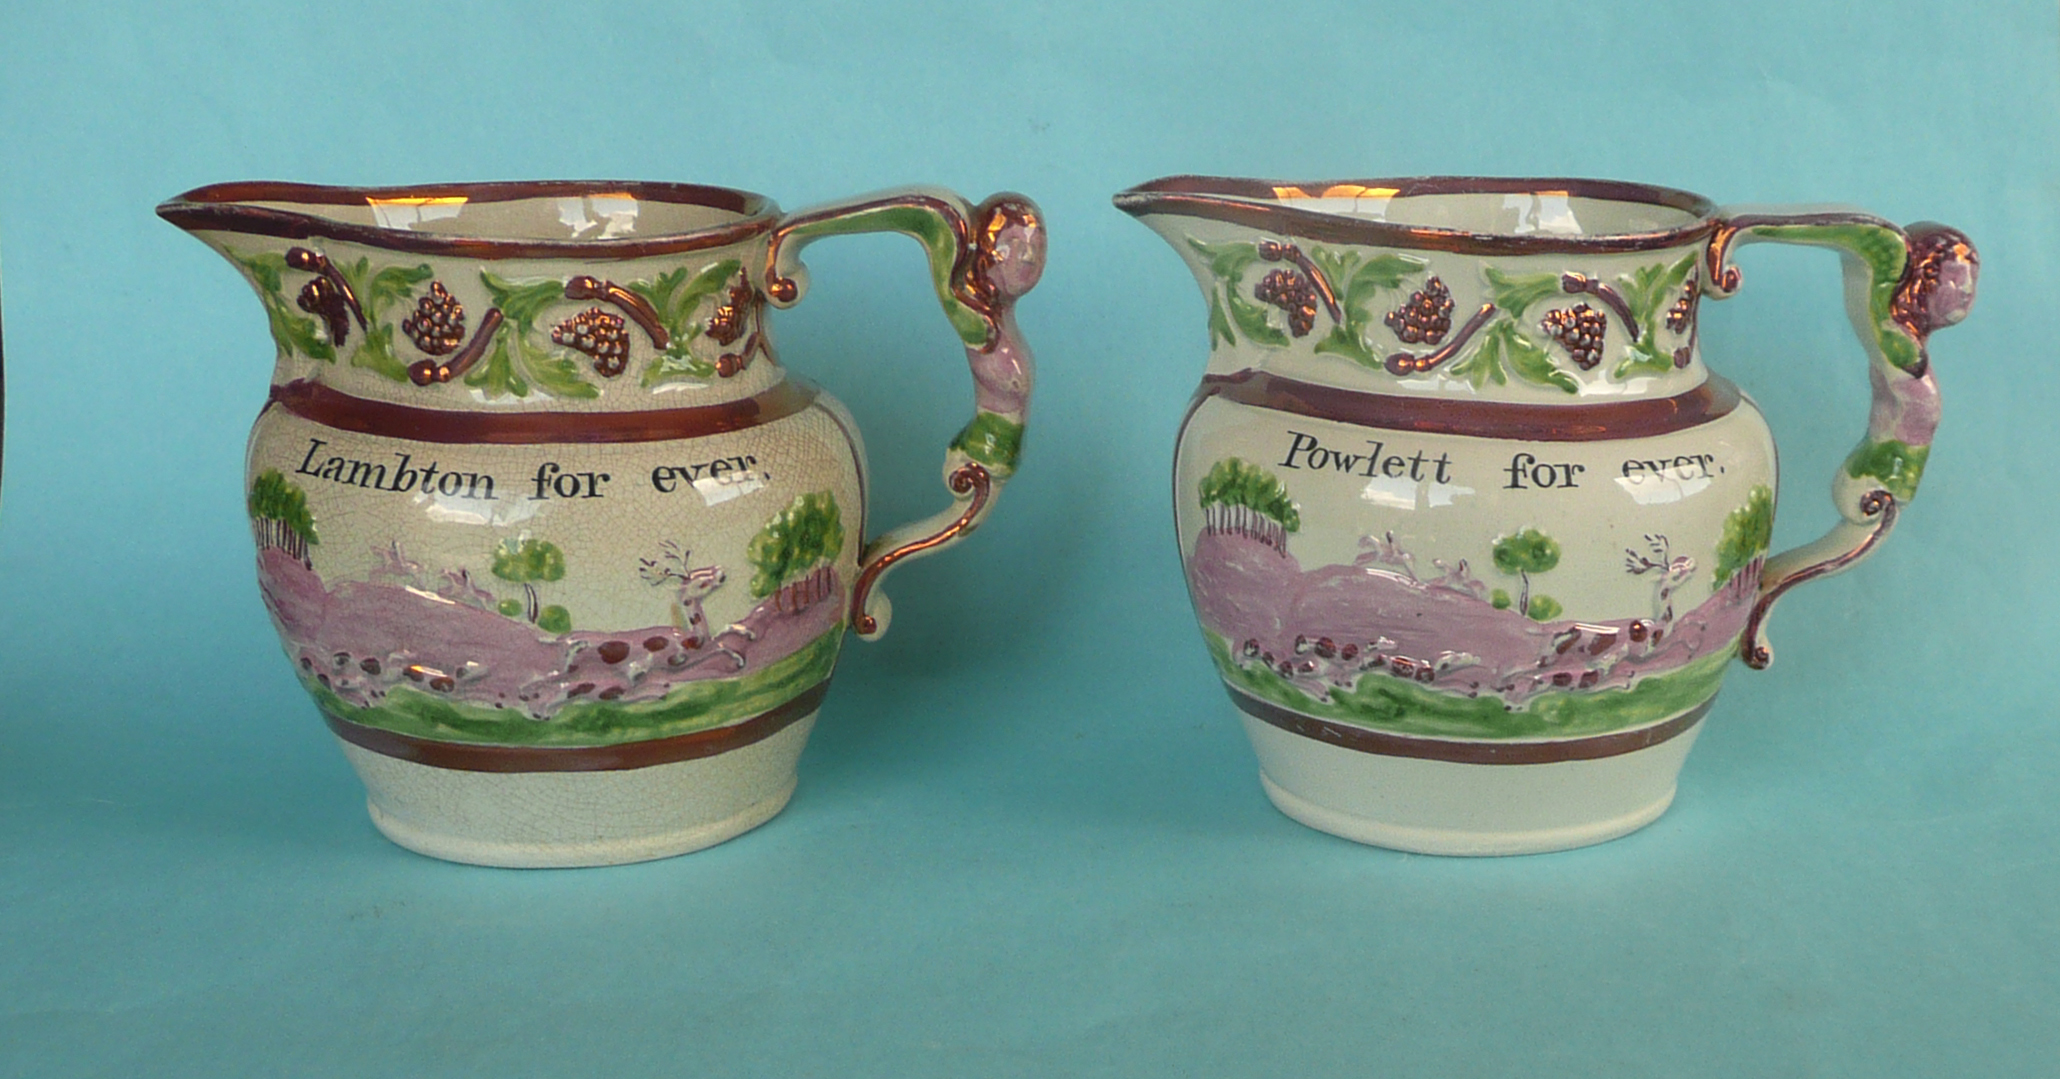 Lot 33 - 1820 General Election: a rare pair of pink lustre jugs set with elaborate figural handles the bodies